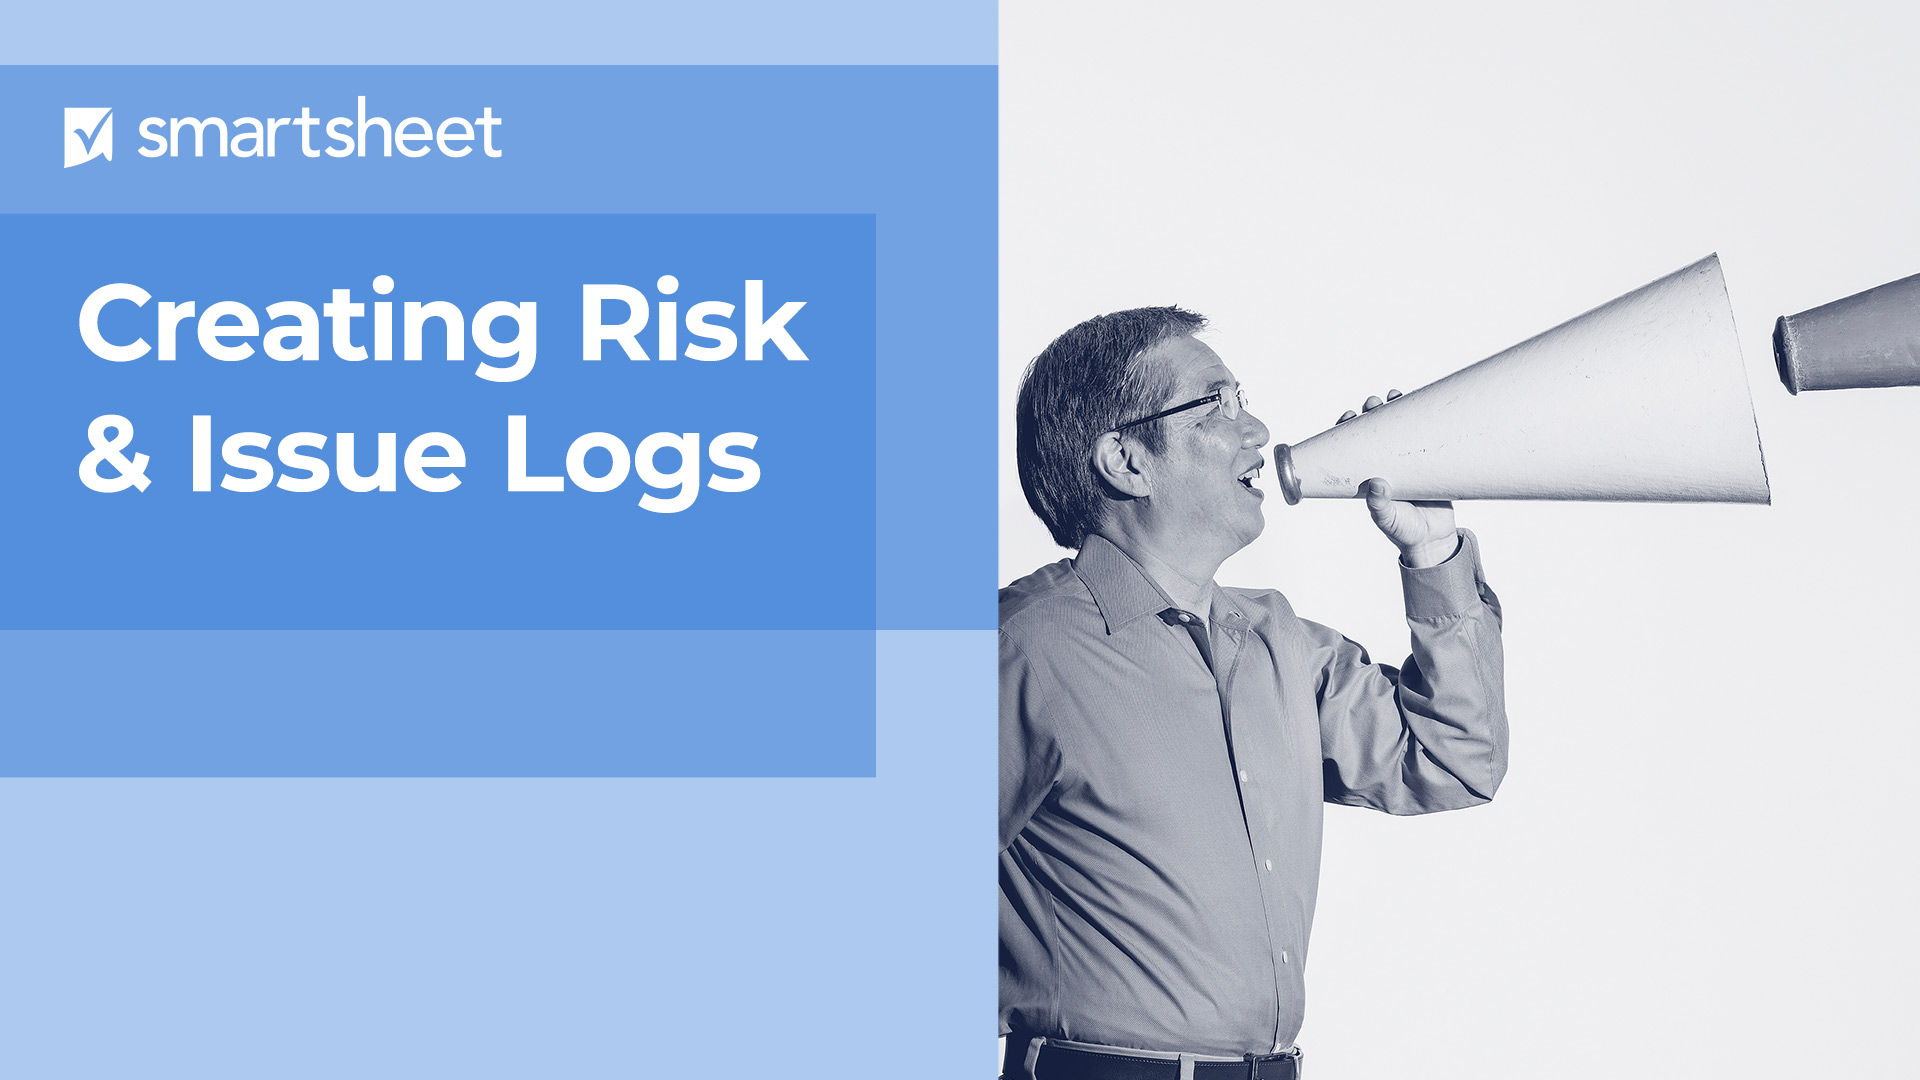 Creating Risk & Issue Logs